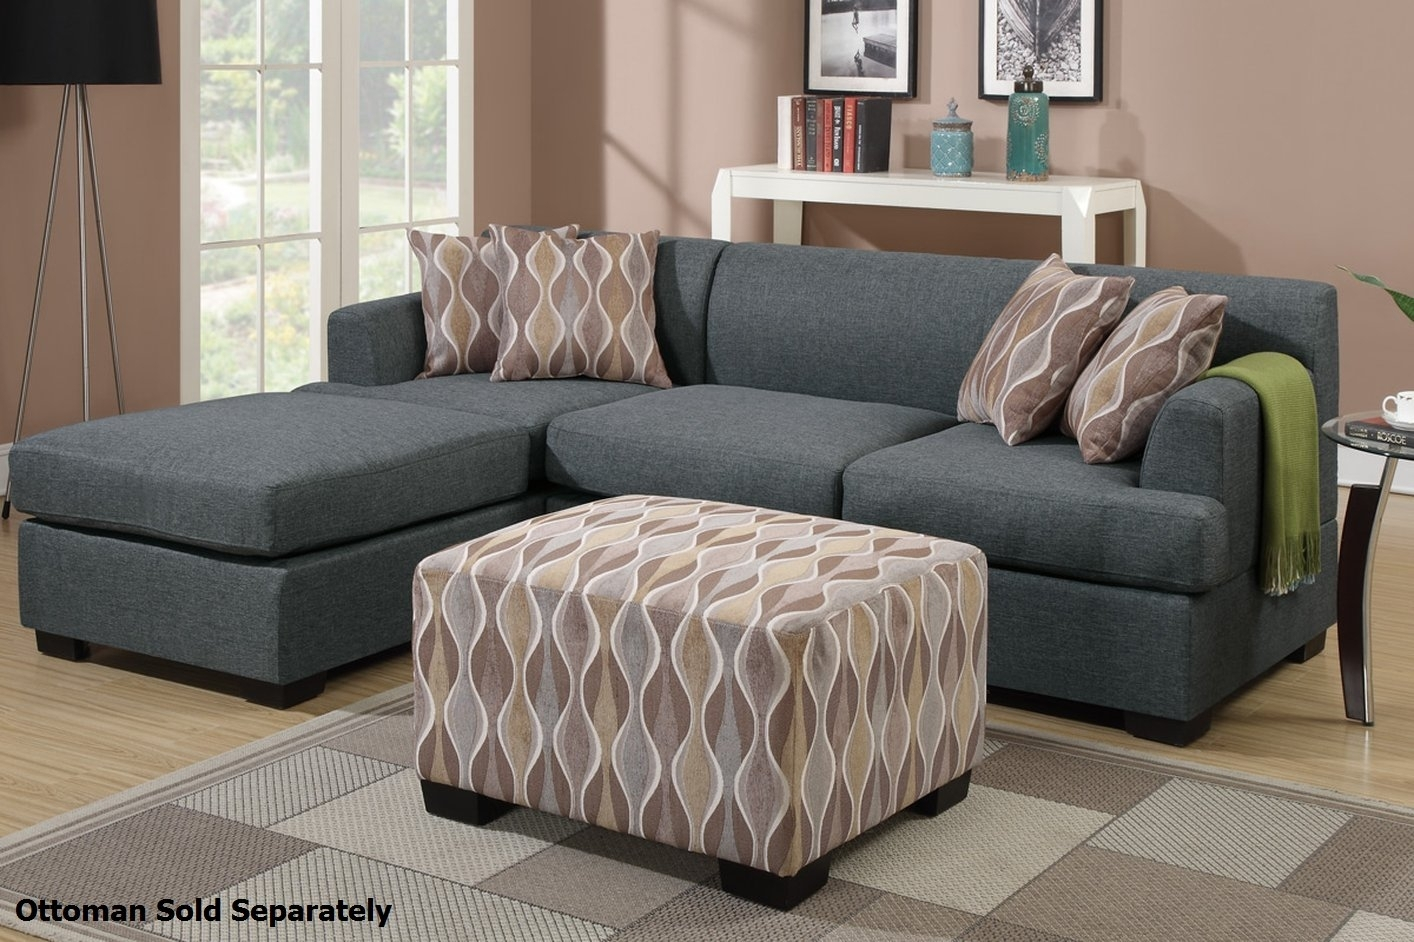 Montreal Ii Grey Fabric Sectional Sofa – Steal A Sofa Furniture In Montreal Sectional Sofas (View 4 of 10)